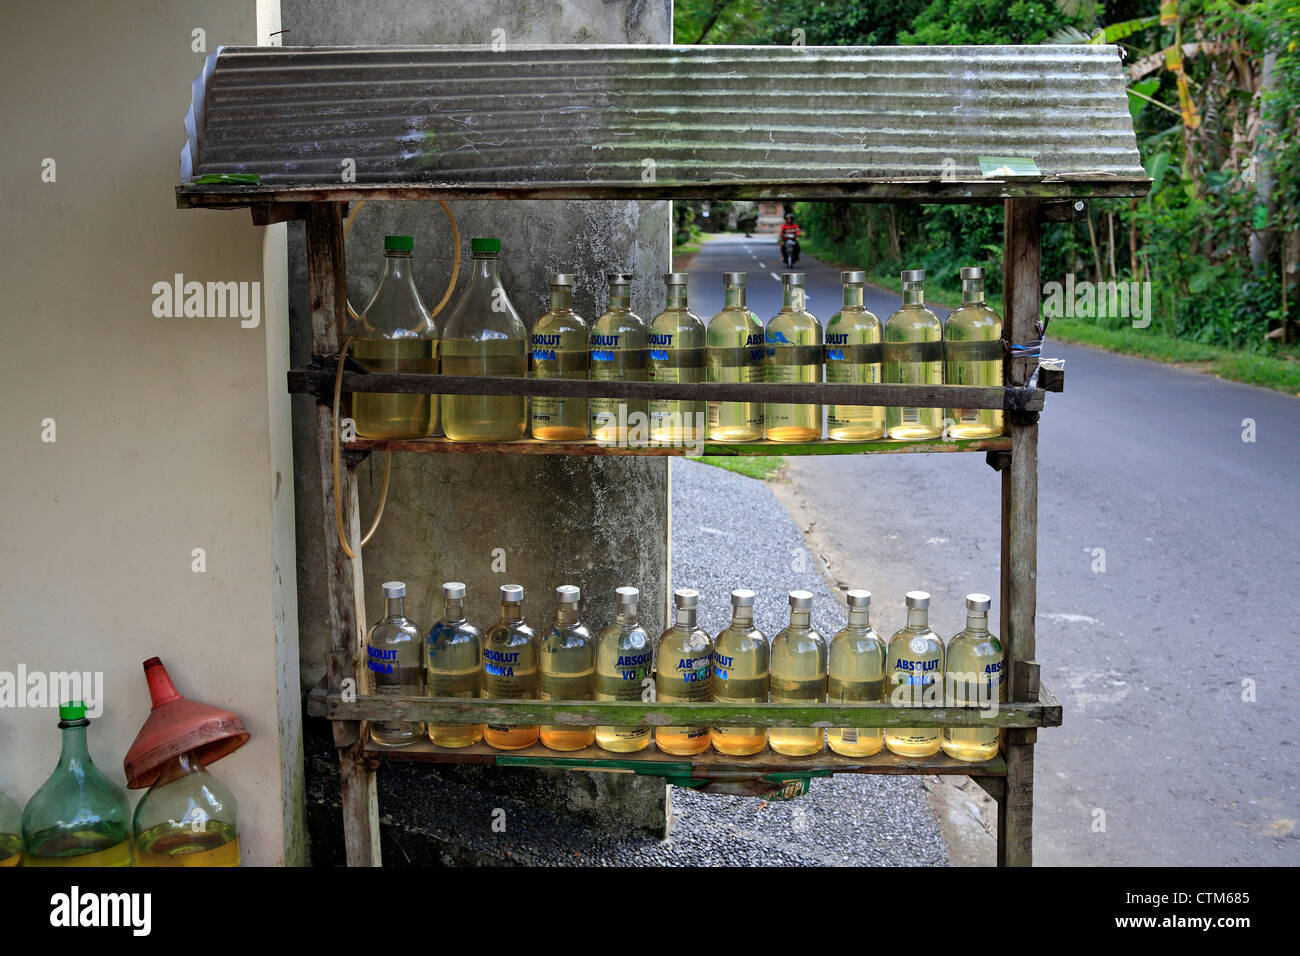 Bottles of petrol available for sale on a roadside stand. Near Ubud, Bali, Indonesia. - Stock Image